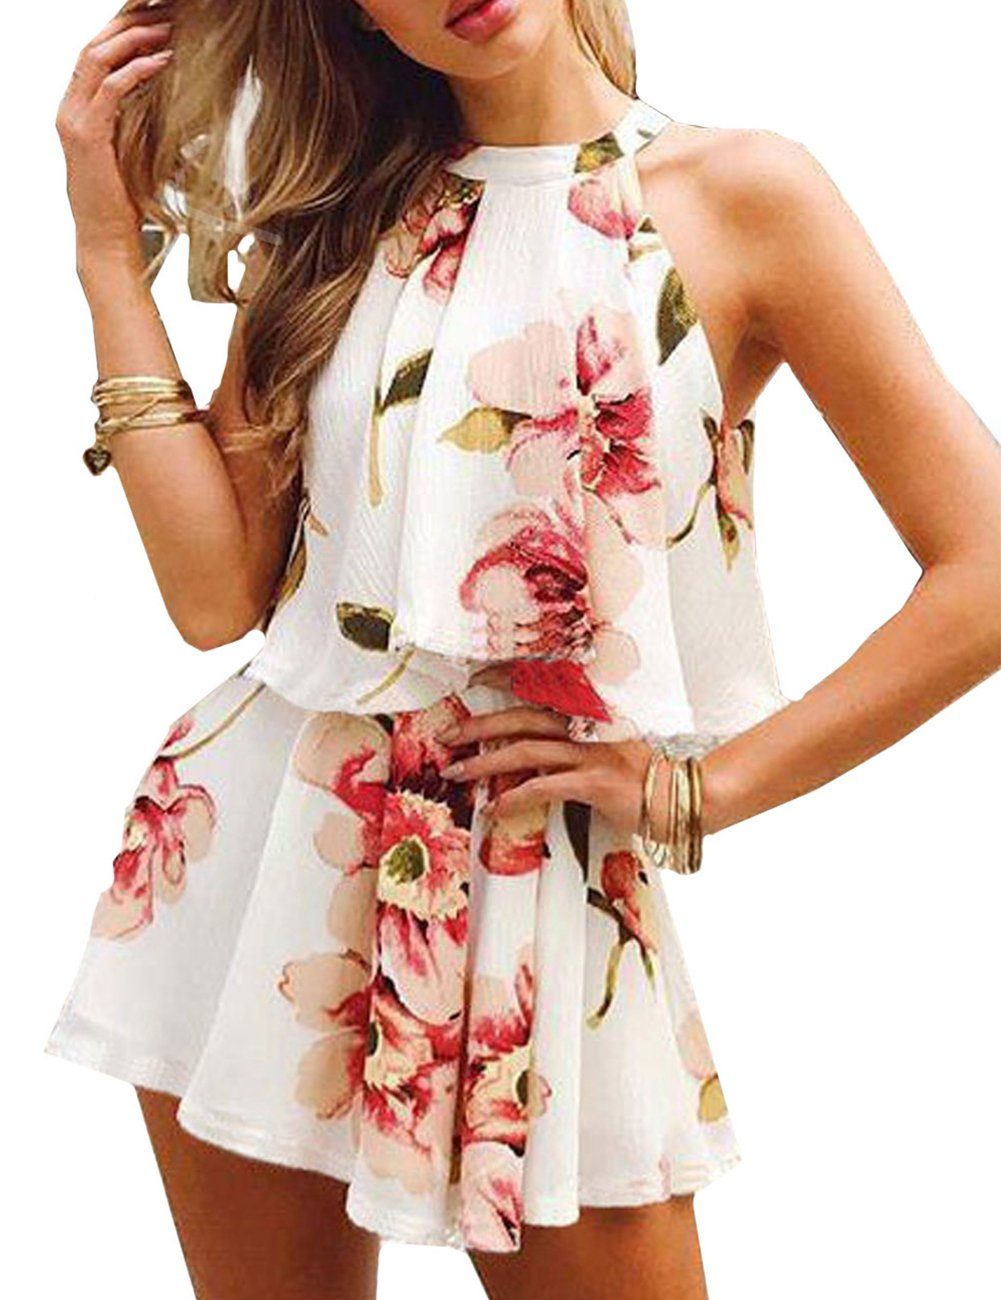 Sanifer Women's Sexy Floral Rompers Summer 2 Piece Outfits Sets Short Jumpsuits Playsuits (Large, White)